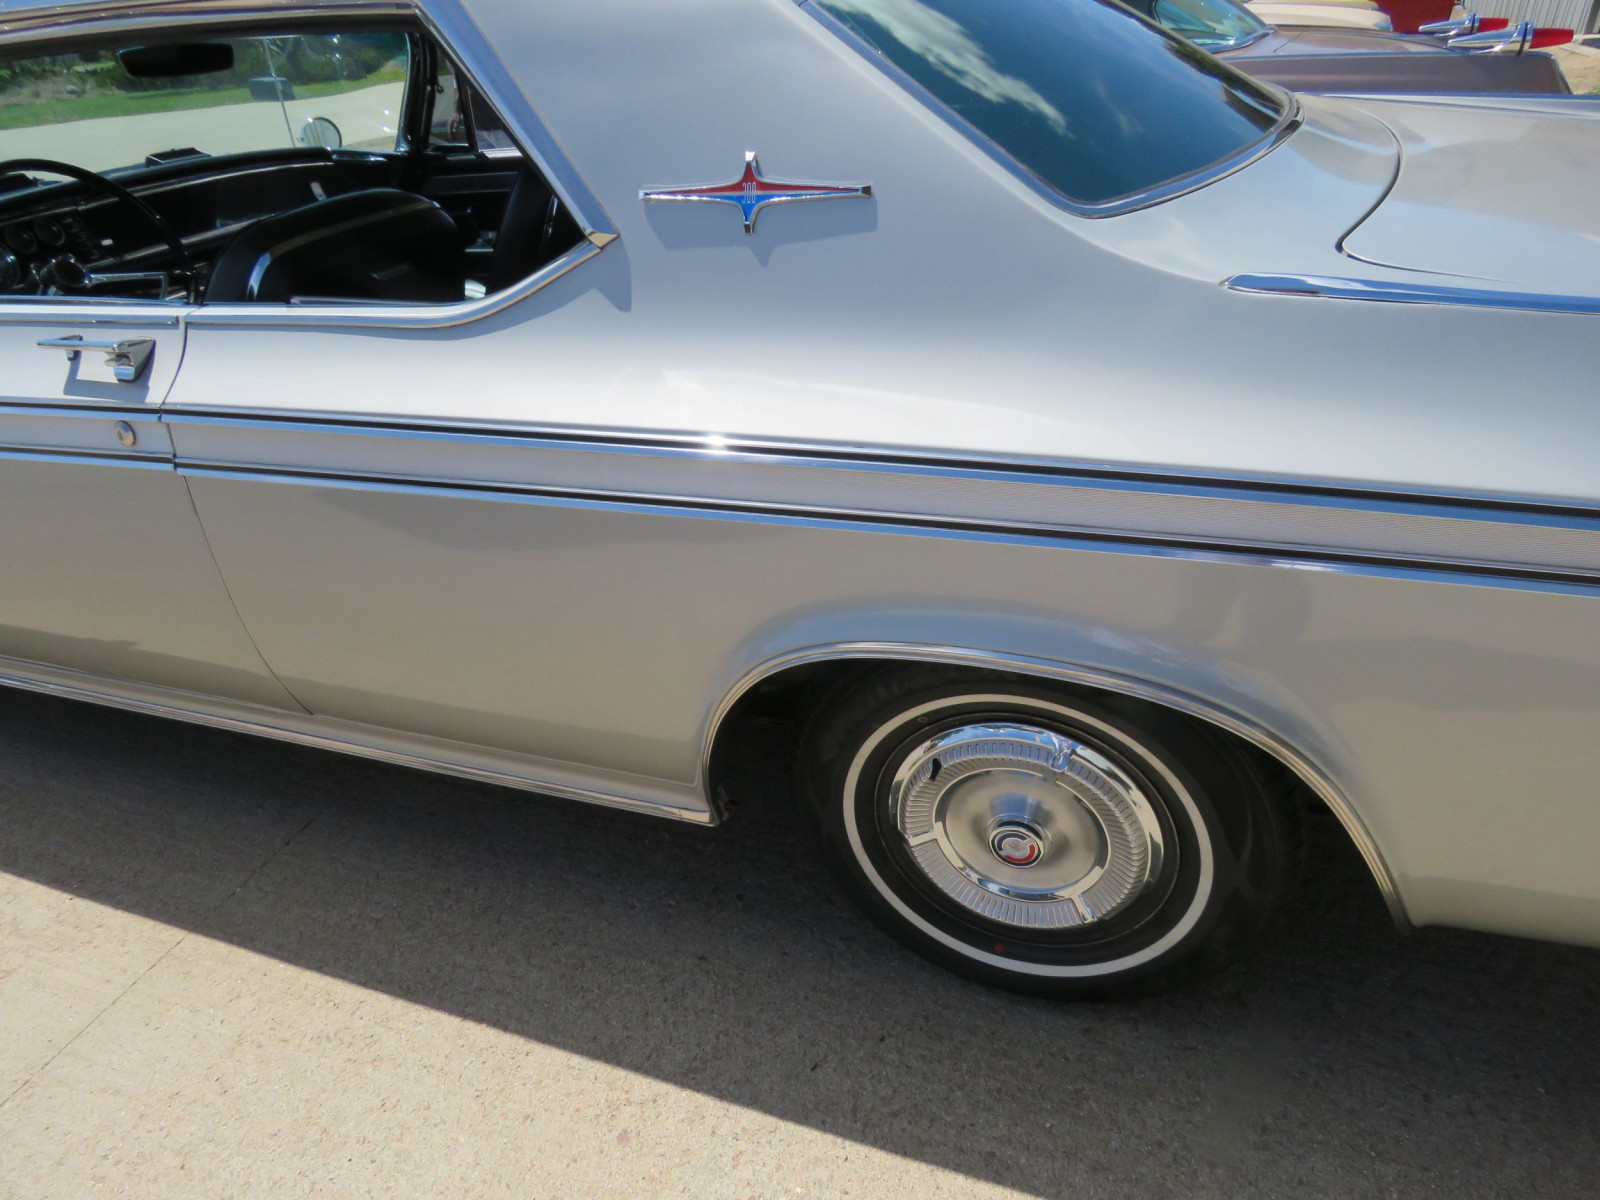 1964 Chrysler 300 Silver Edition 2dr HT - Image 9